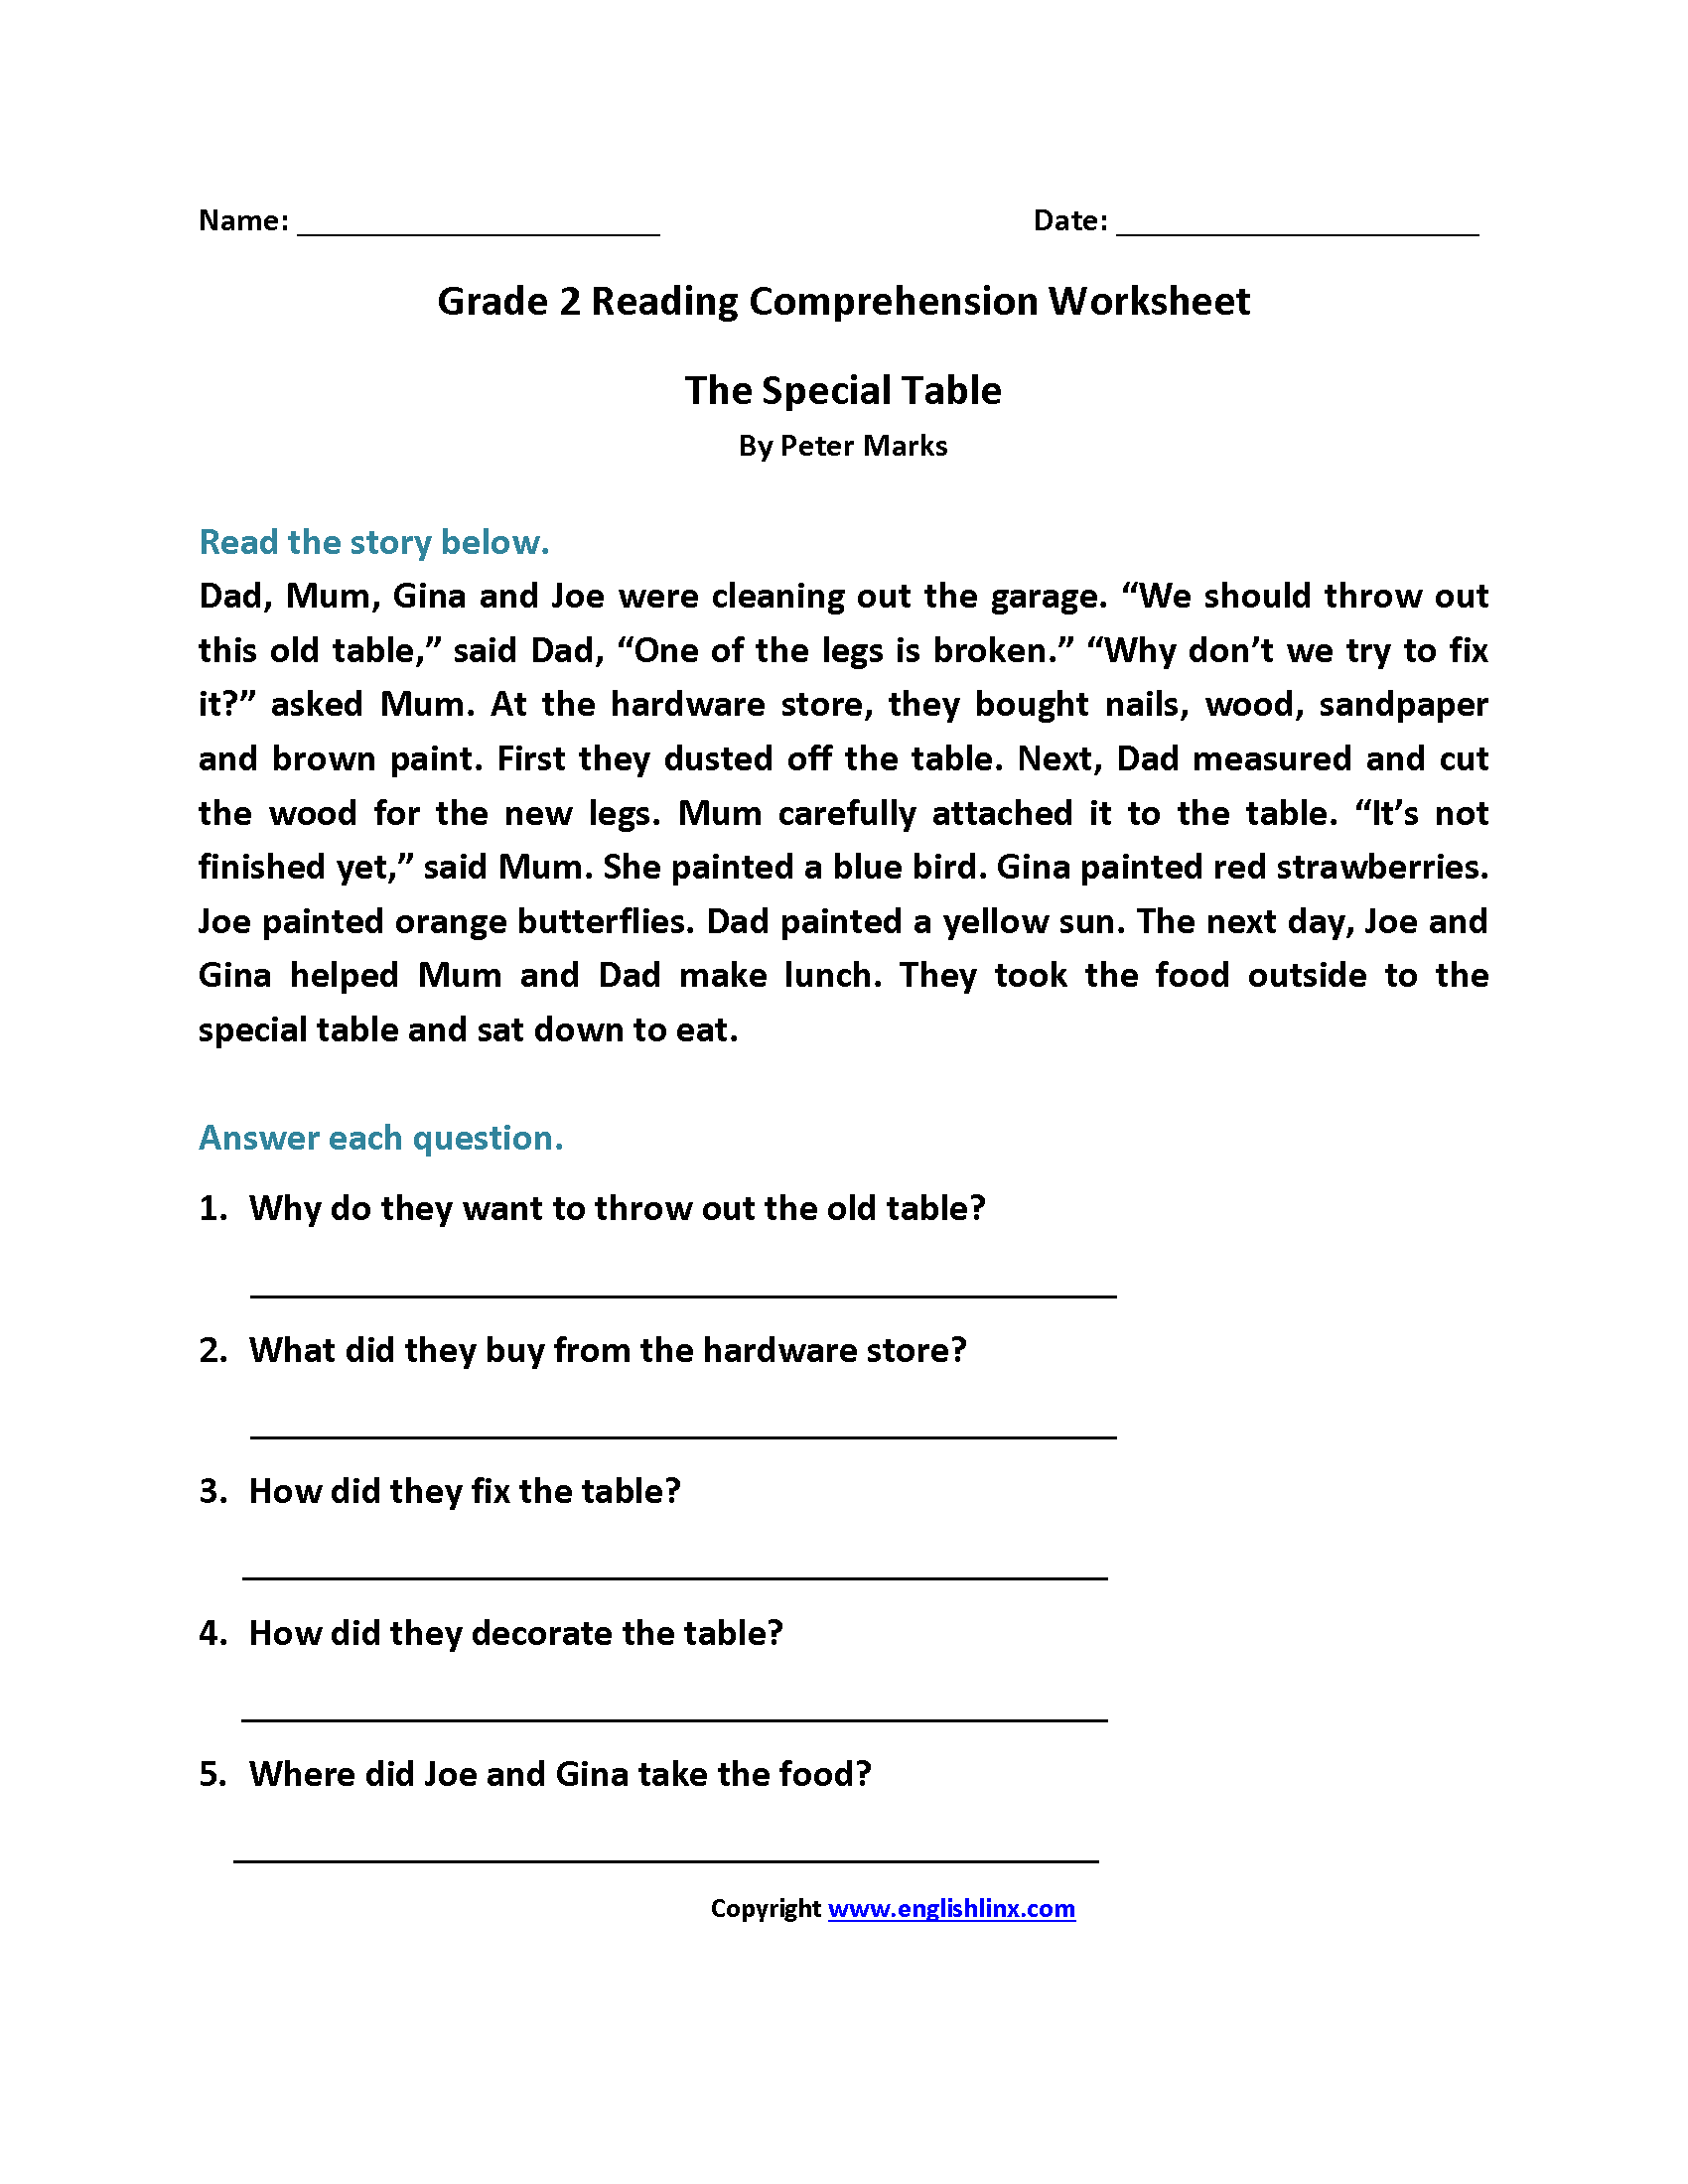 The Special Table Second Grade Reading Worksheets